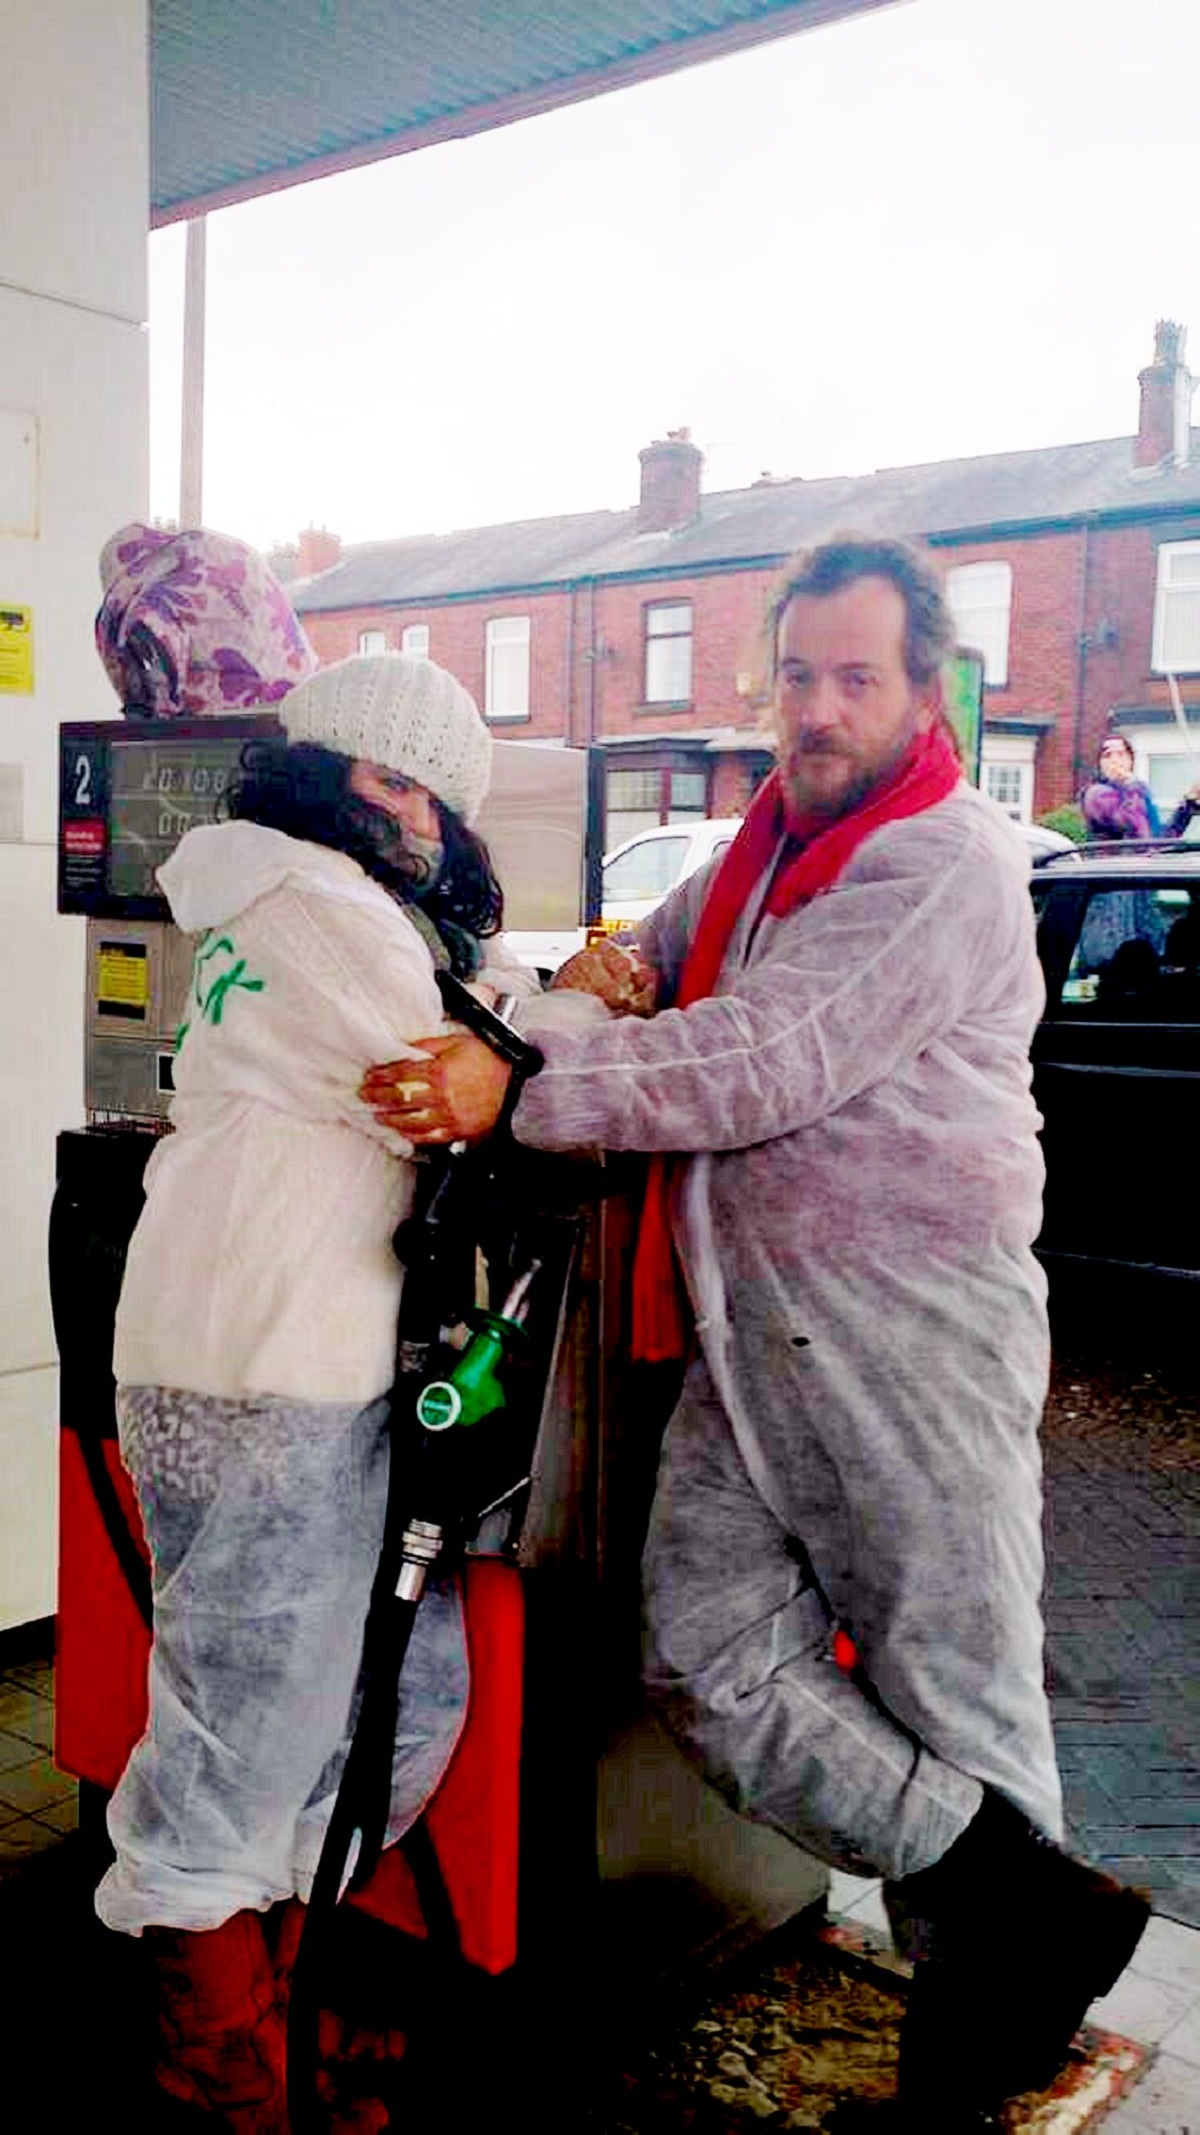 Anti-fracking protesters who glued themselves to pumps were at wrong petrol station